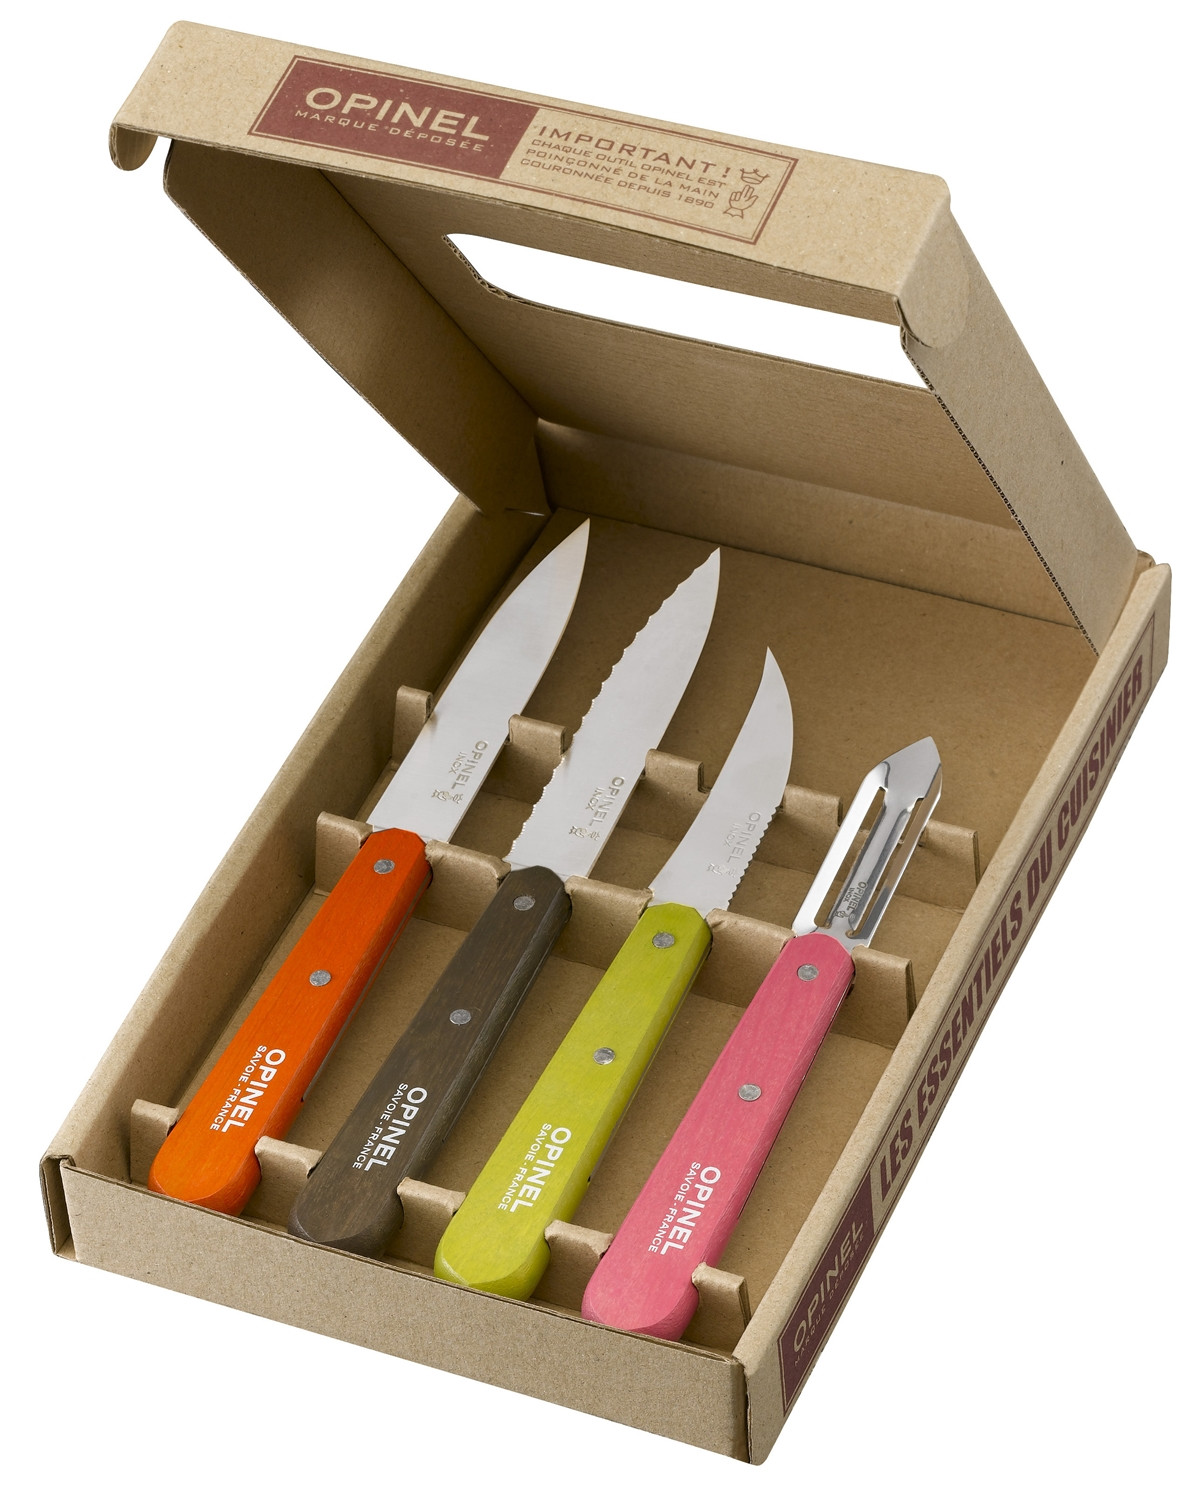 1452 - OPINEL KITCHEN Set